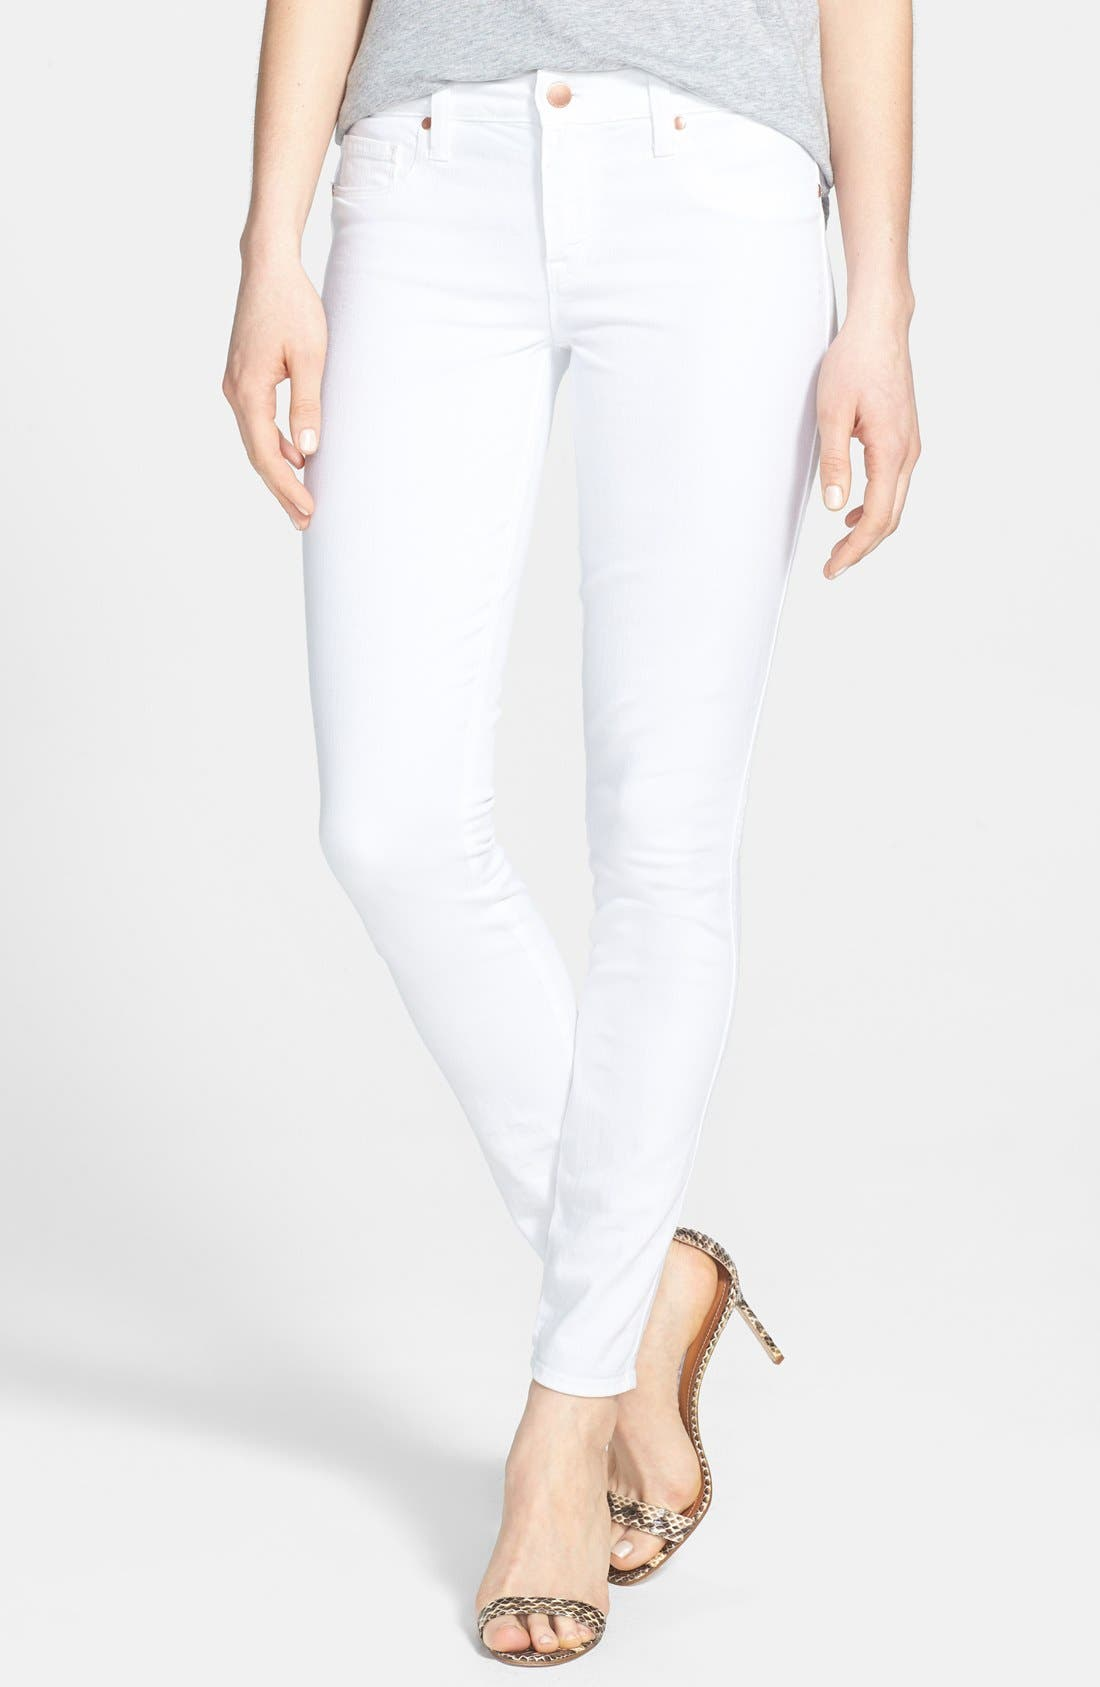 Alternate Image 1 Selected - Genetic 'Shya' Skinny Jeans (Pale)